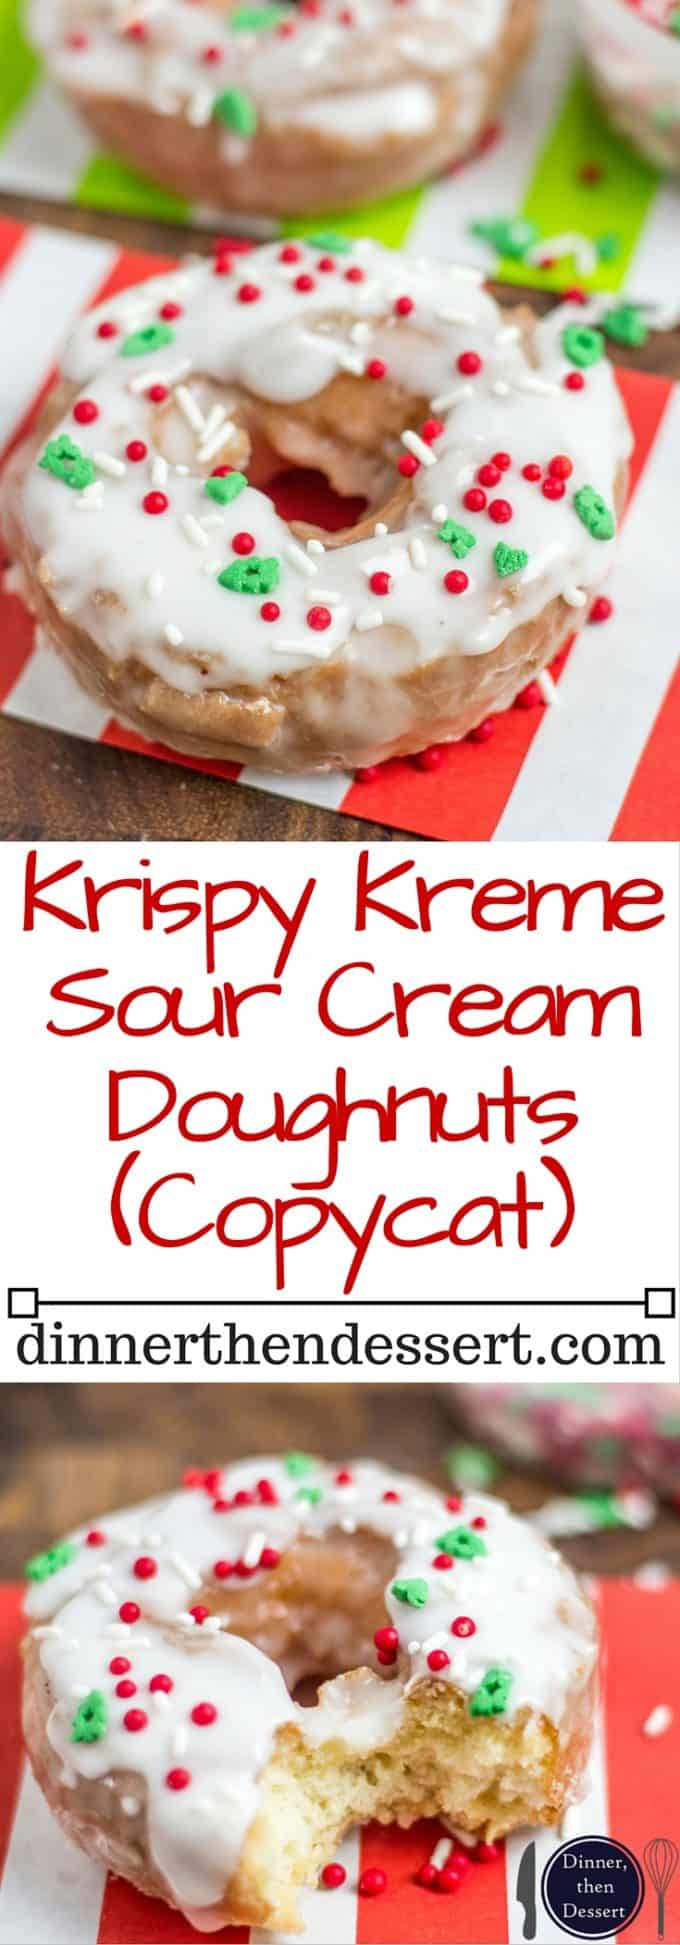 Classic Sour Cream Doughnuts fried to perfection with a classic powdered sugar glaze just like at Krispy Kreme! No yeast makes these doughnuts easy to make and with festive sprinkles a fantastic Holiday brunch/party treat!